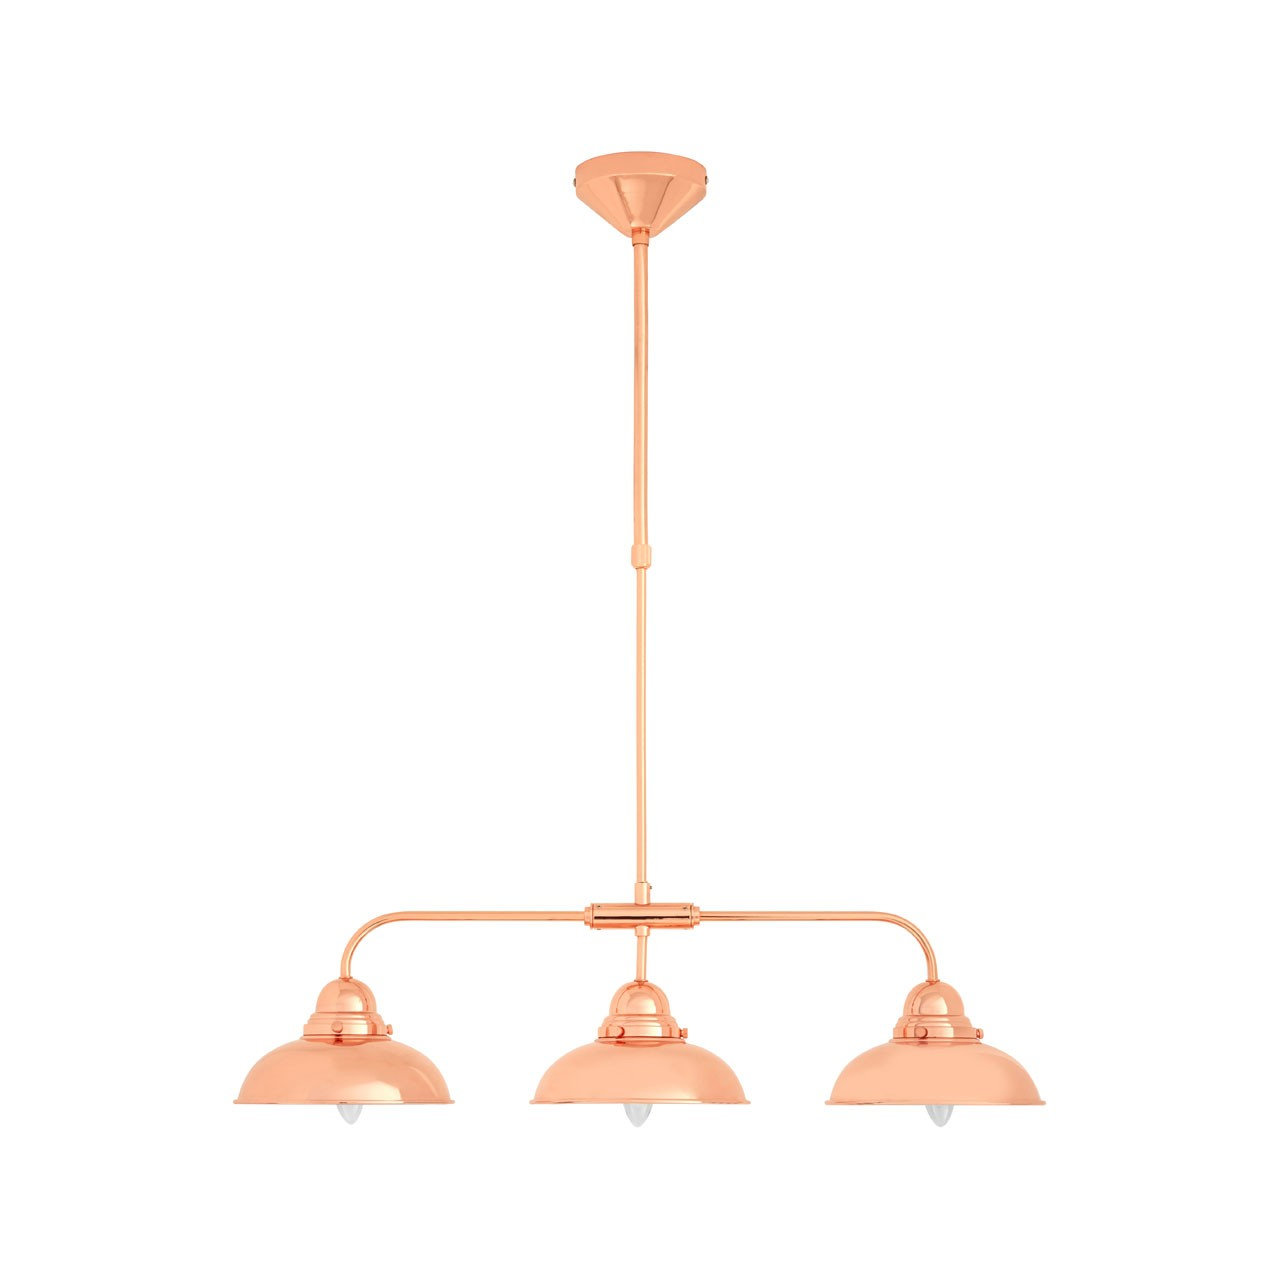 Prime Furnishing Jasper 3 Pendant Light Copper Finish